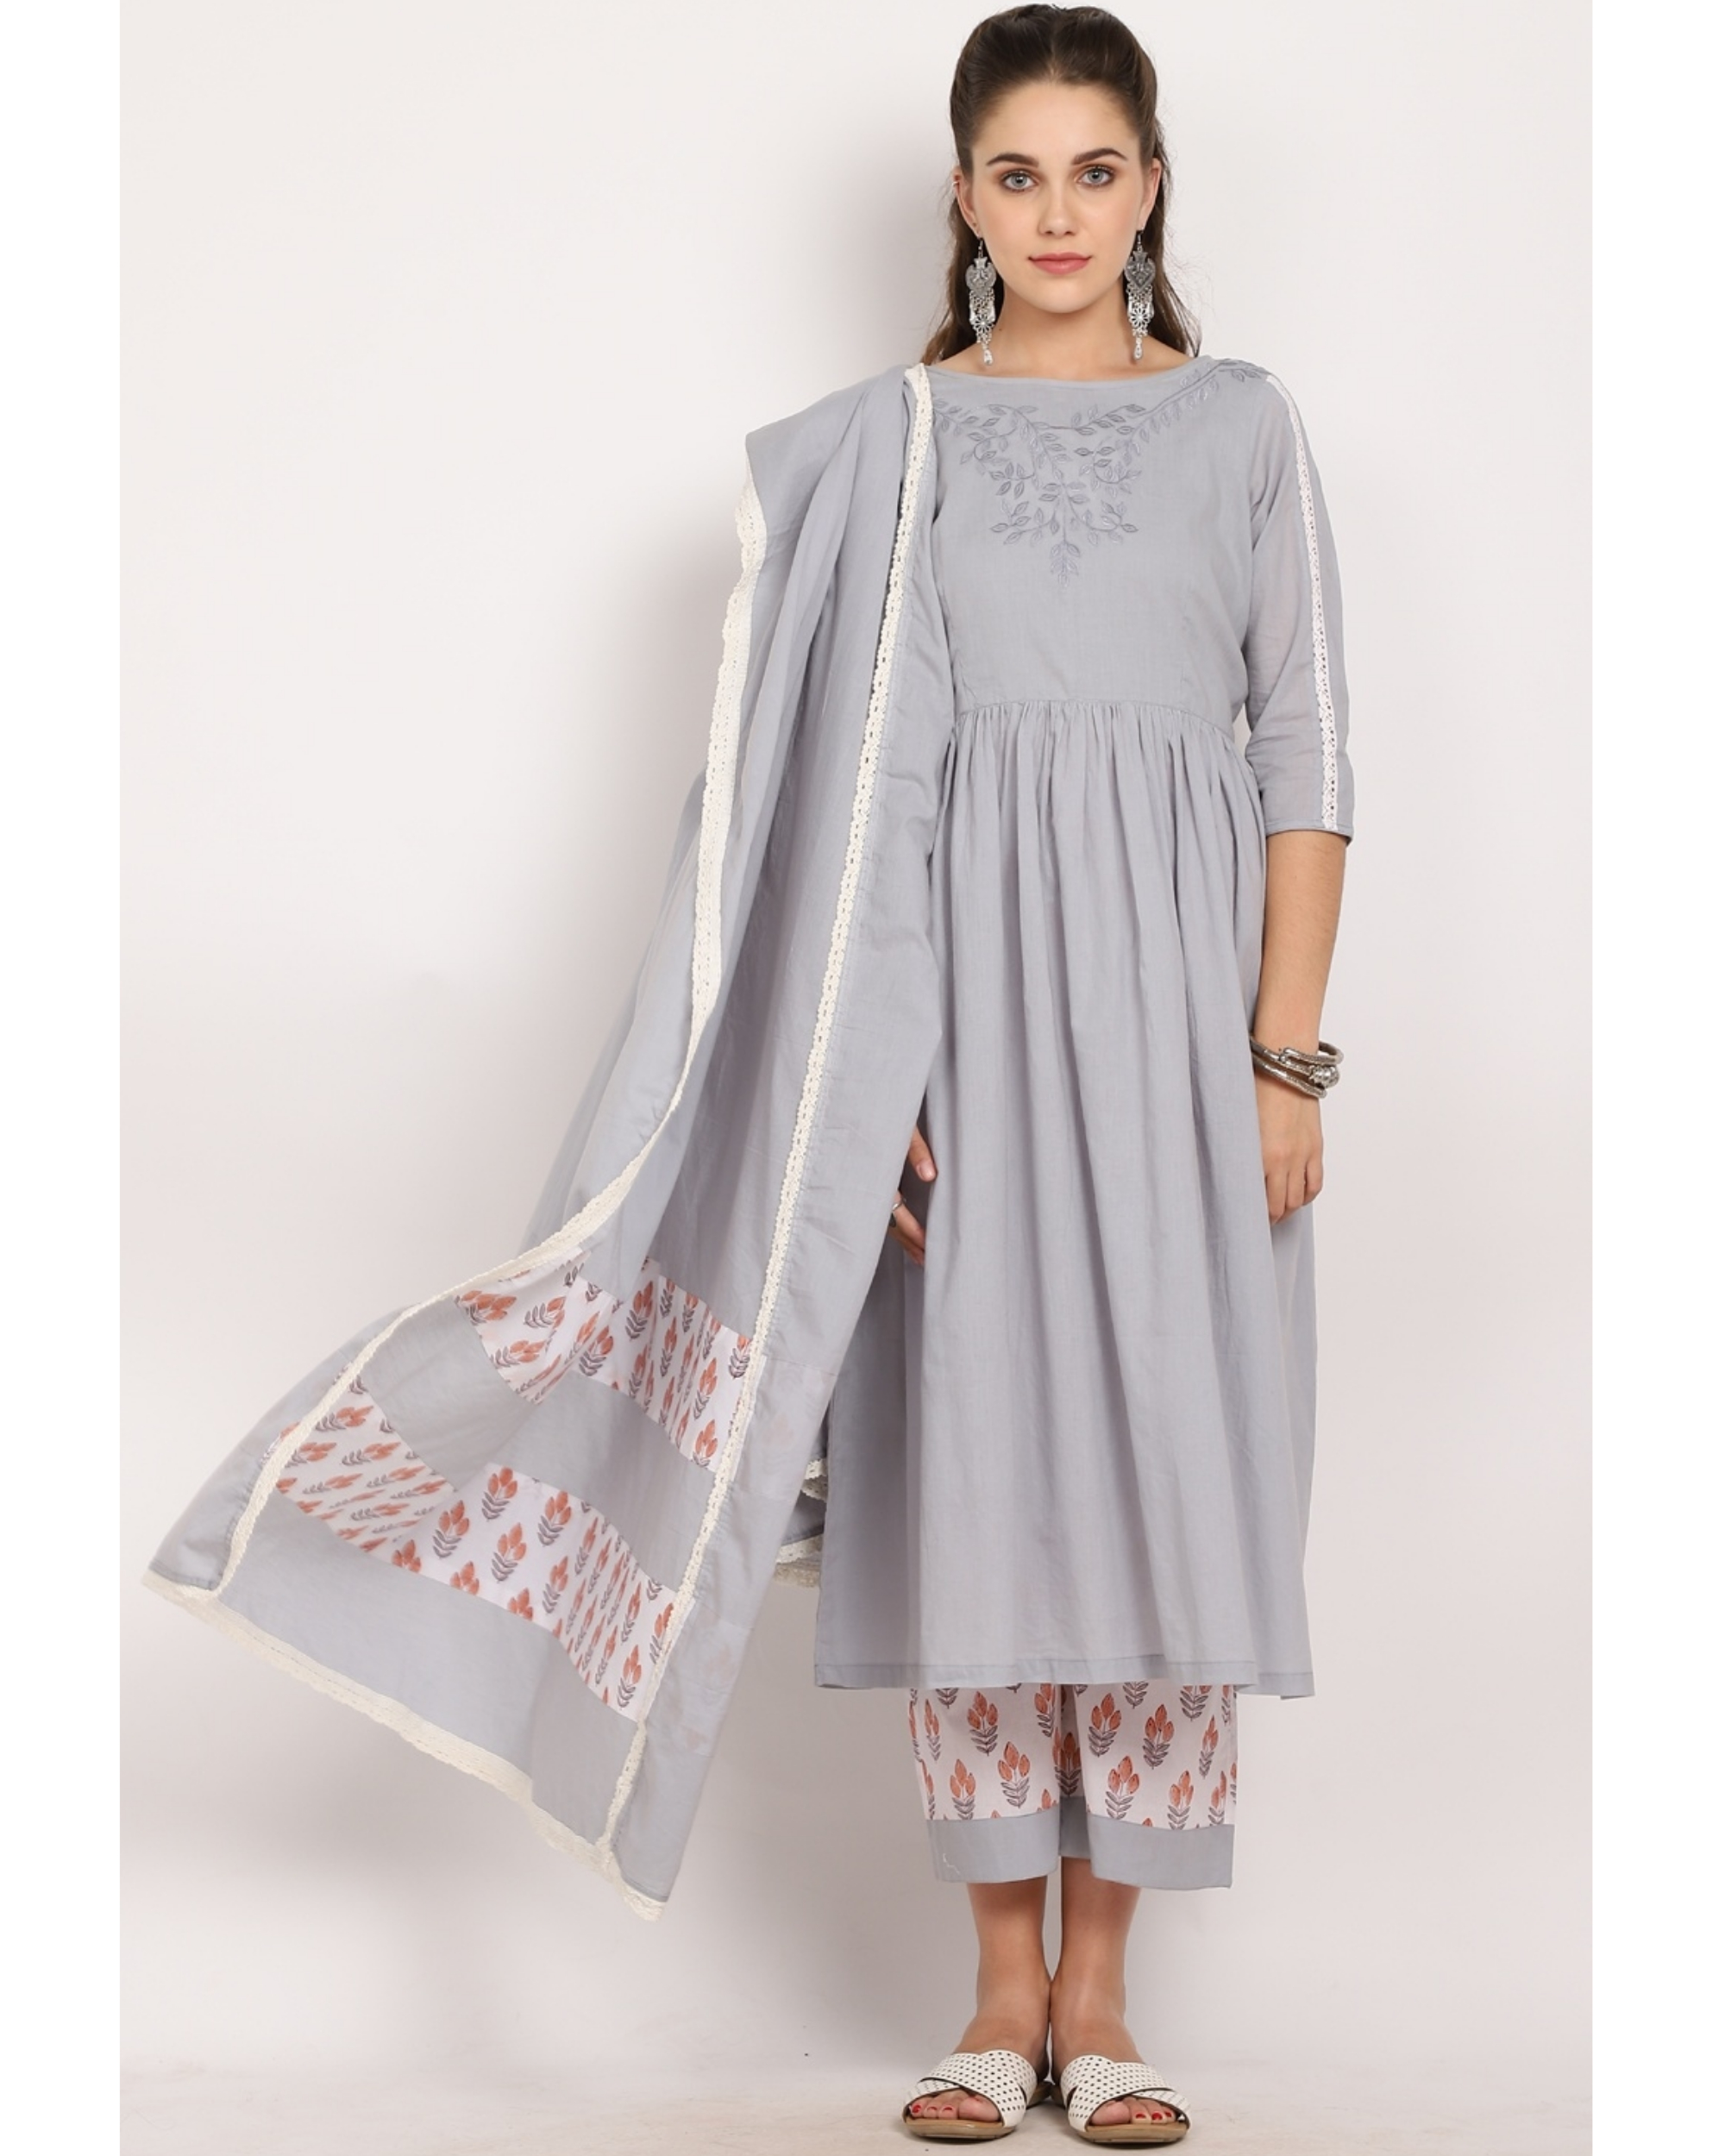 Steel grey printed suit set with crochet embroidered dupatta - set of three